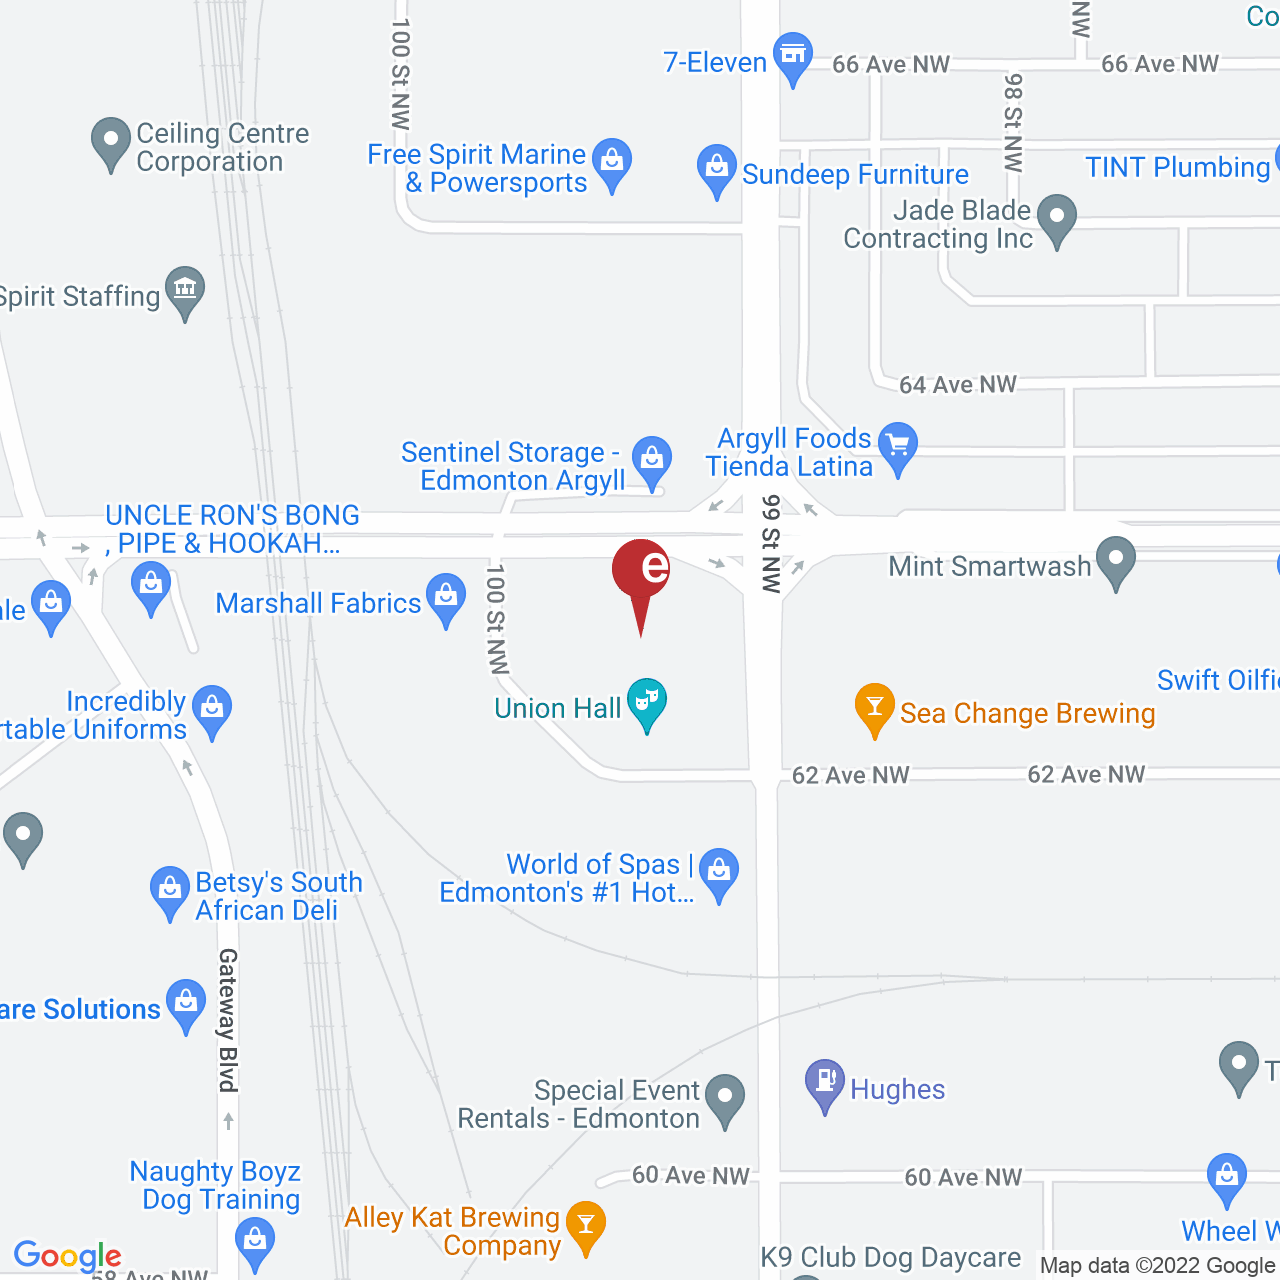 Street map for Spiritleaf Argyll Plaza, 9941 63 Ave. NW, Edmonton AB